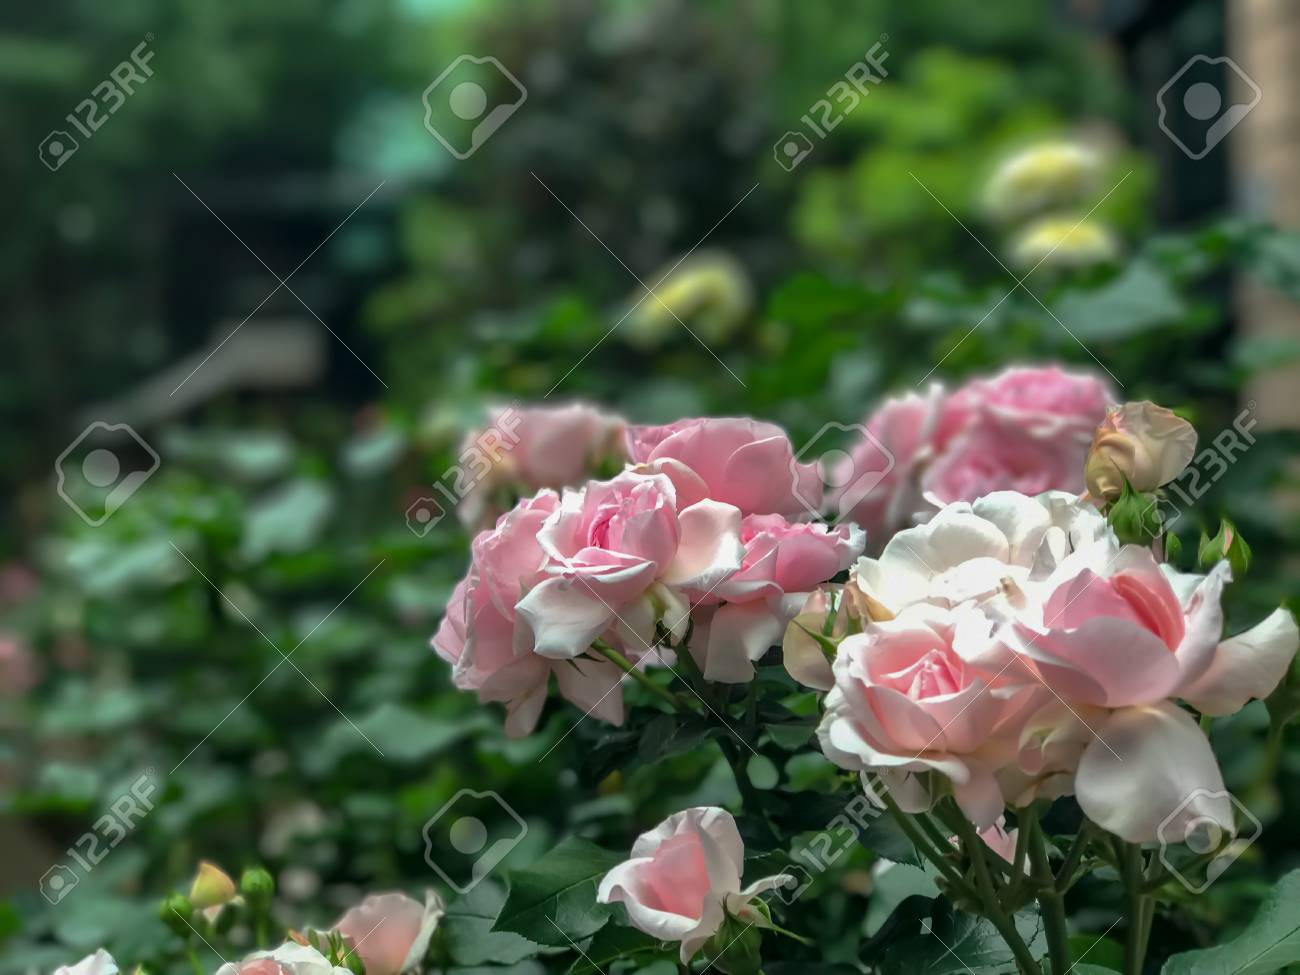 Amazing Rose Garden Japan Photos - Landscaping Ideas for Backyard ...